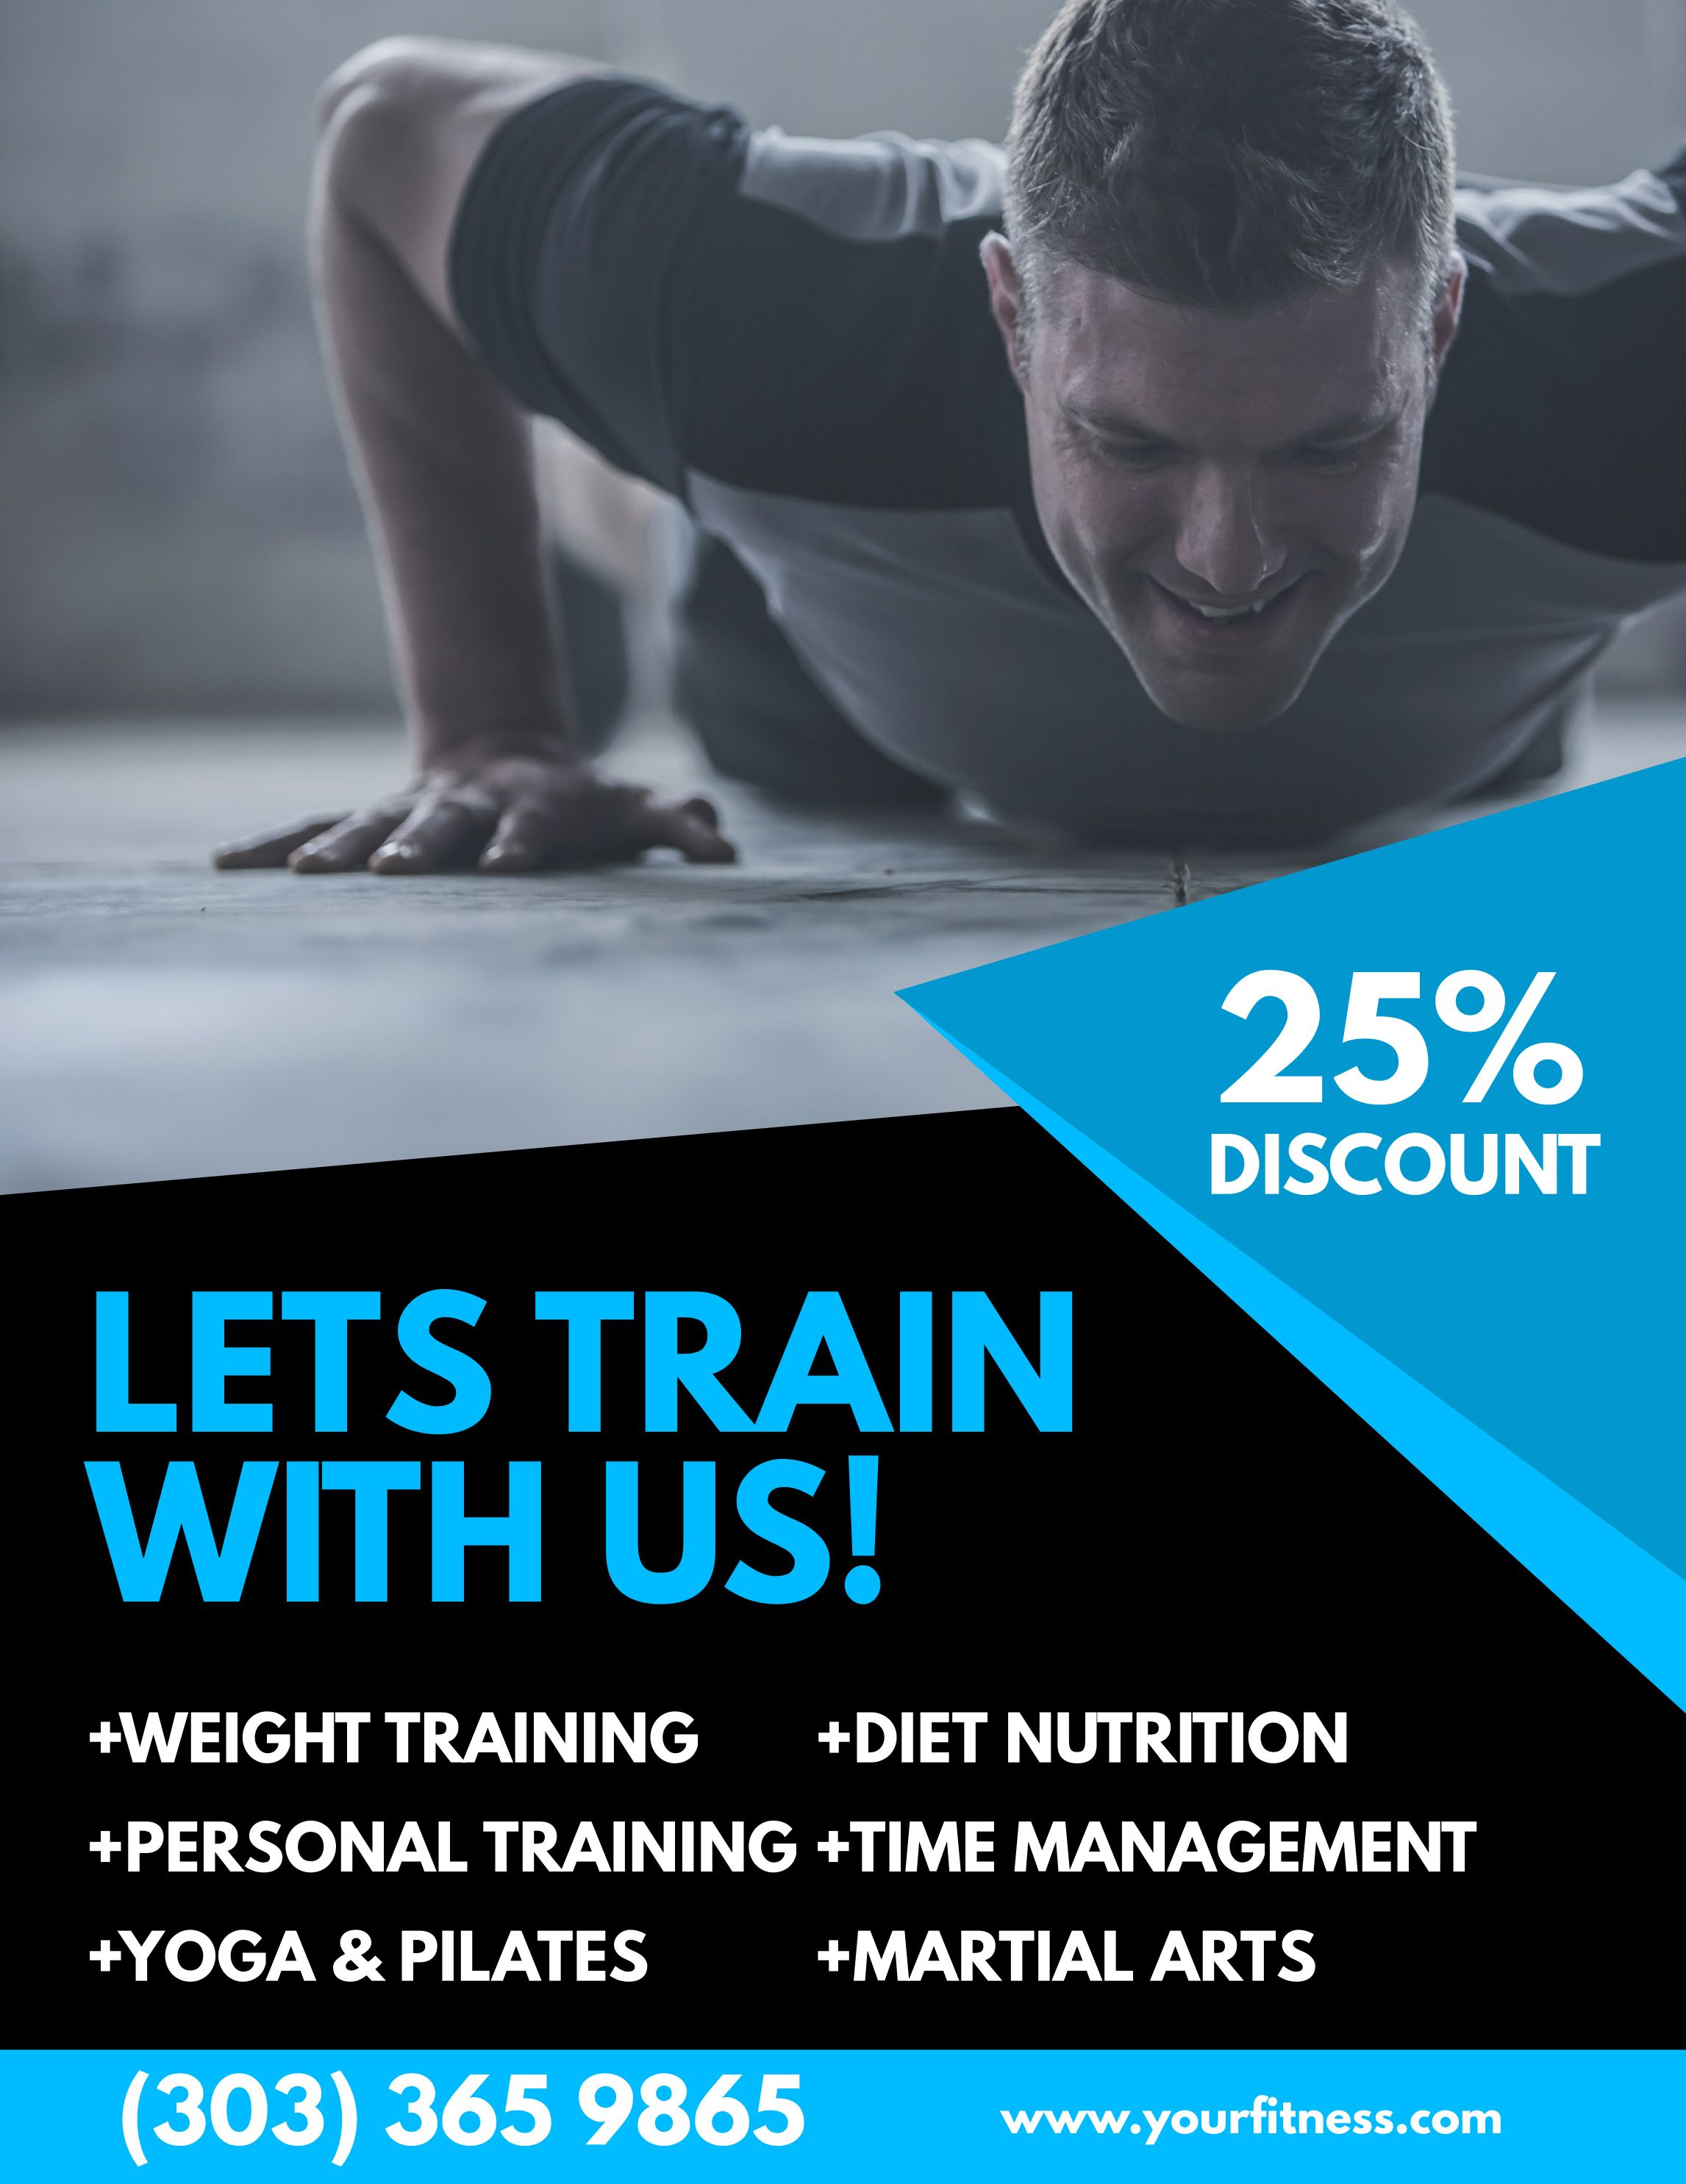 Gym ad poster flyer social media graphic design template. | Fitness ...